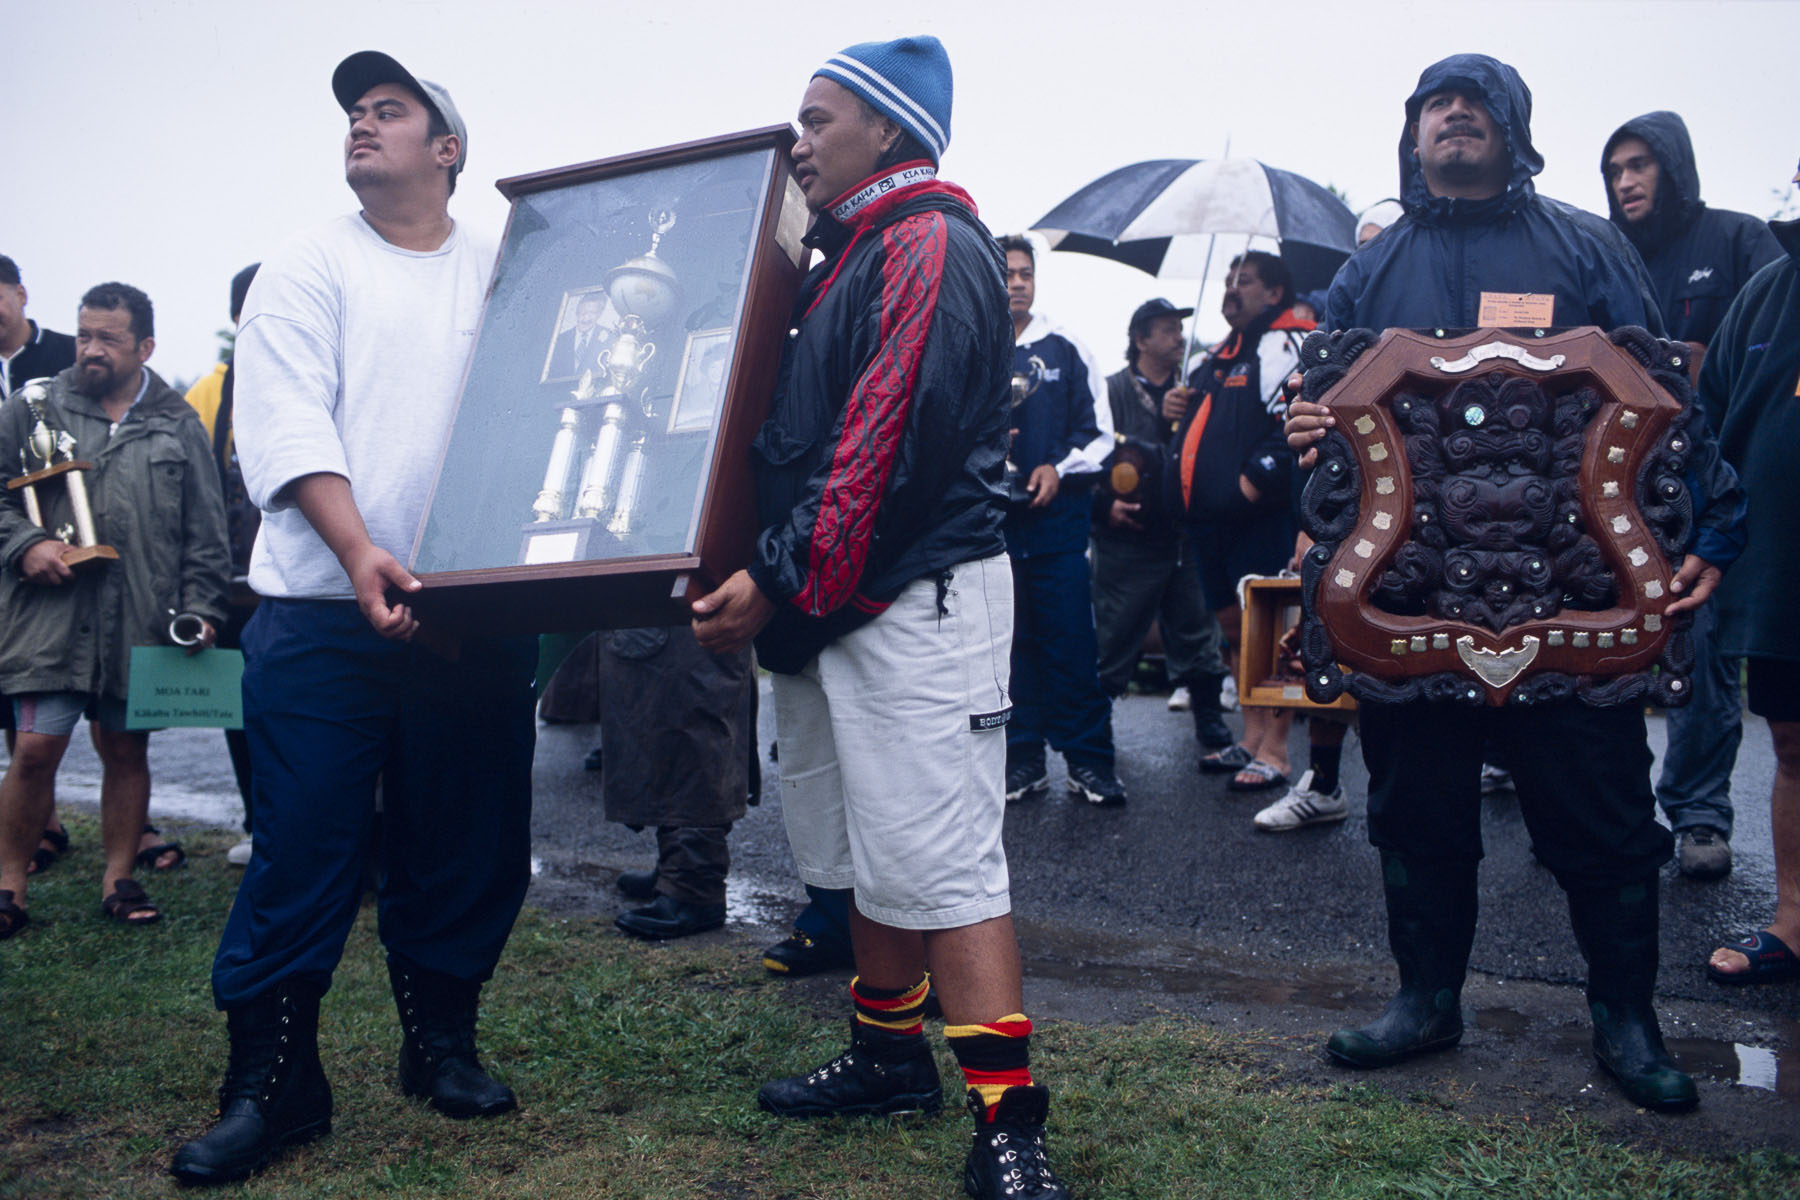 Maoris show trophies during a powhiri, traditional Maori welcoming ceremony before a funeral in May 2000